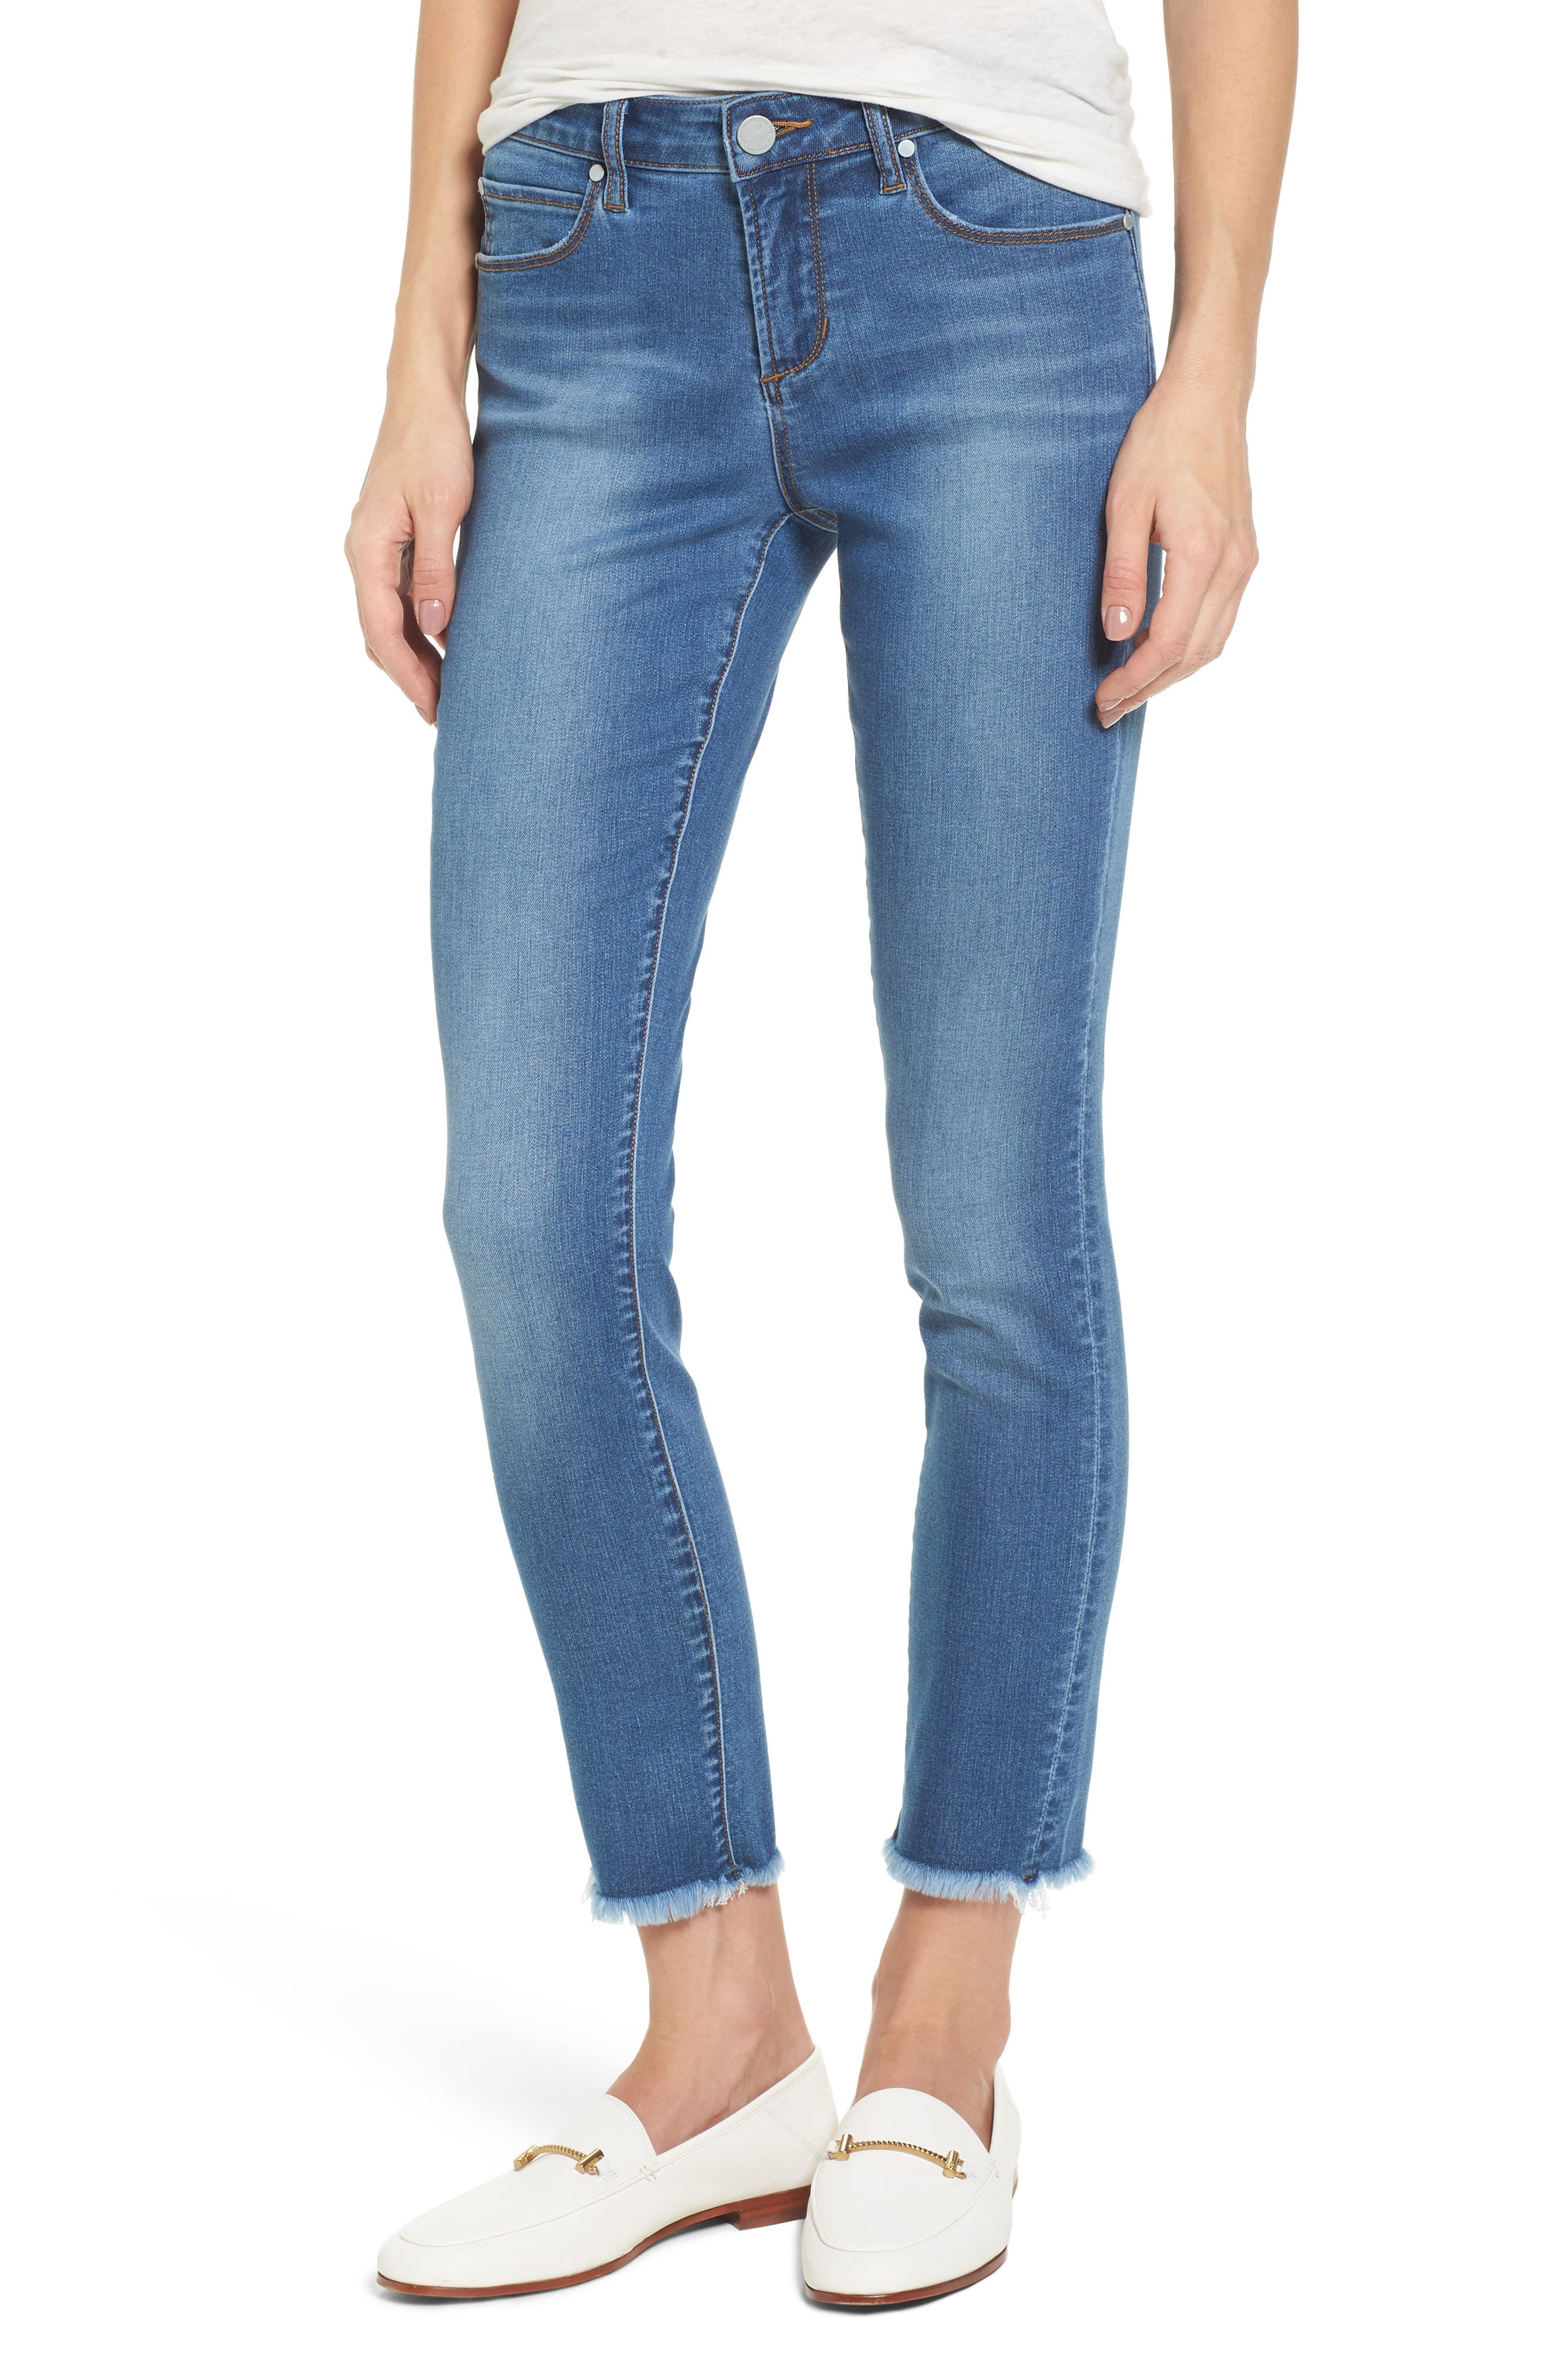 Carly Ankle Skinny Jeans,                             Main thumbnail 1, color,                             400